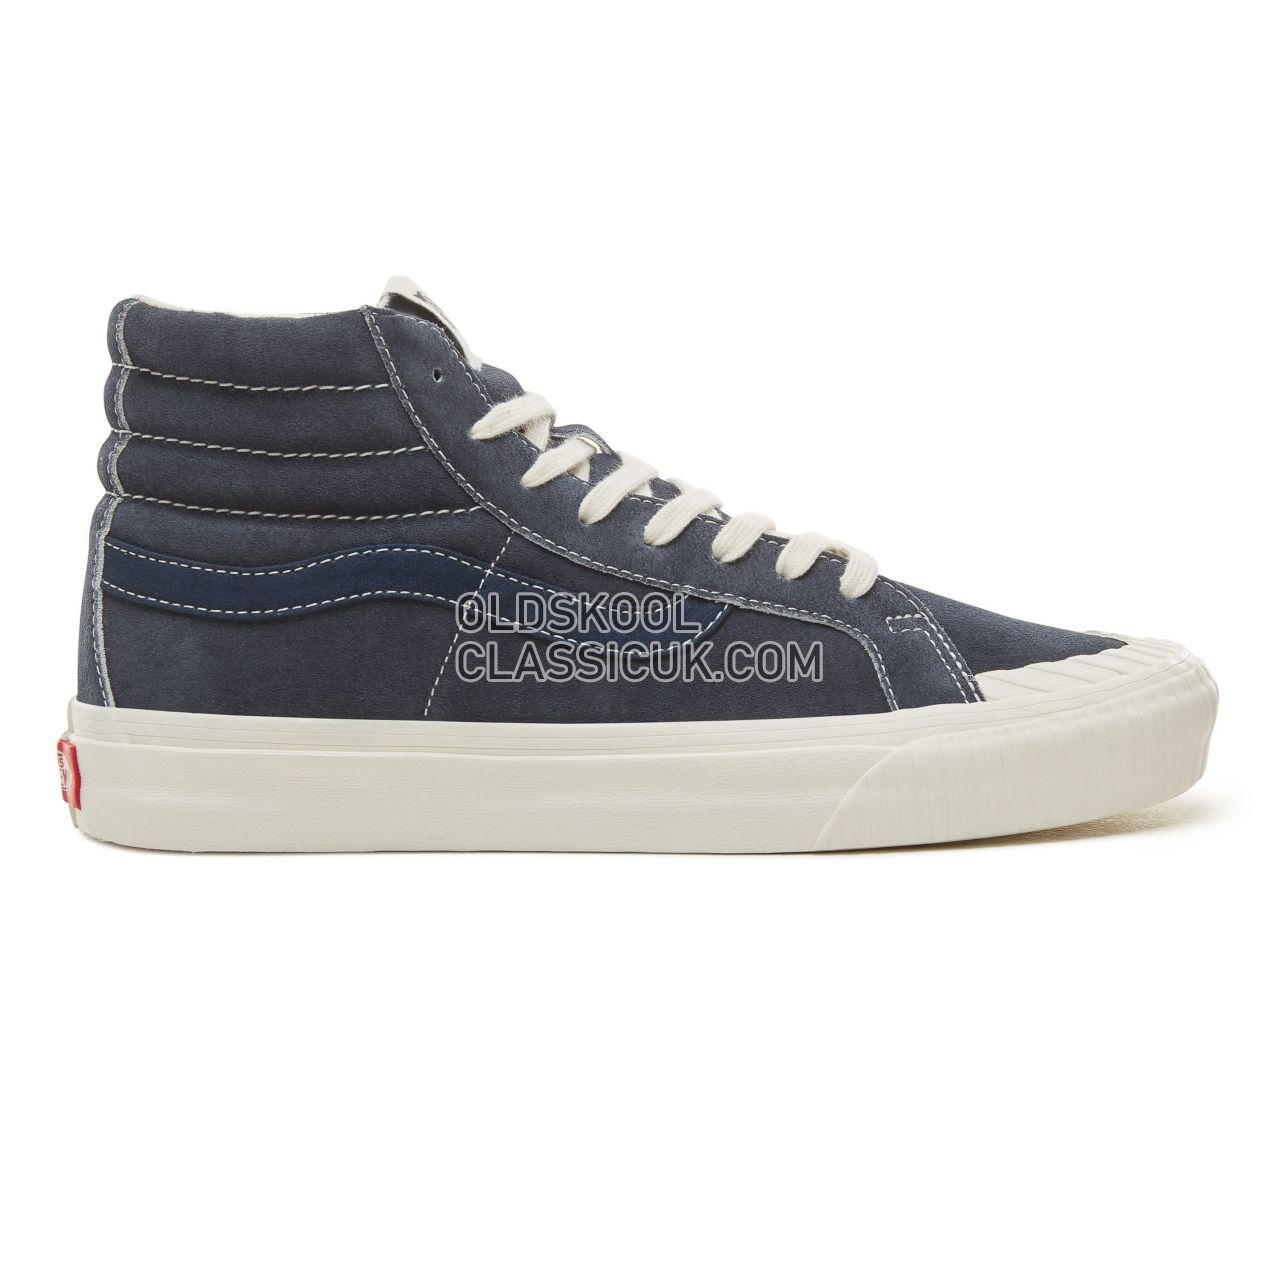 7148d499d5 Vans Suede Vintage Military Sk8-Hi Reissue 138 Sneakers Mens (Vintage  Military) Dress ...